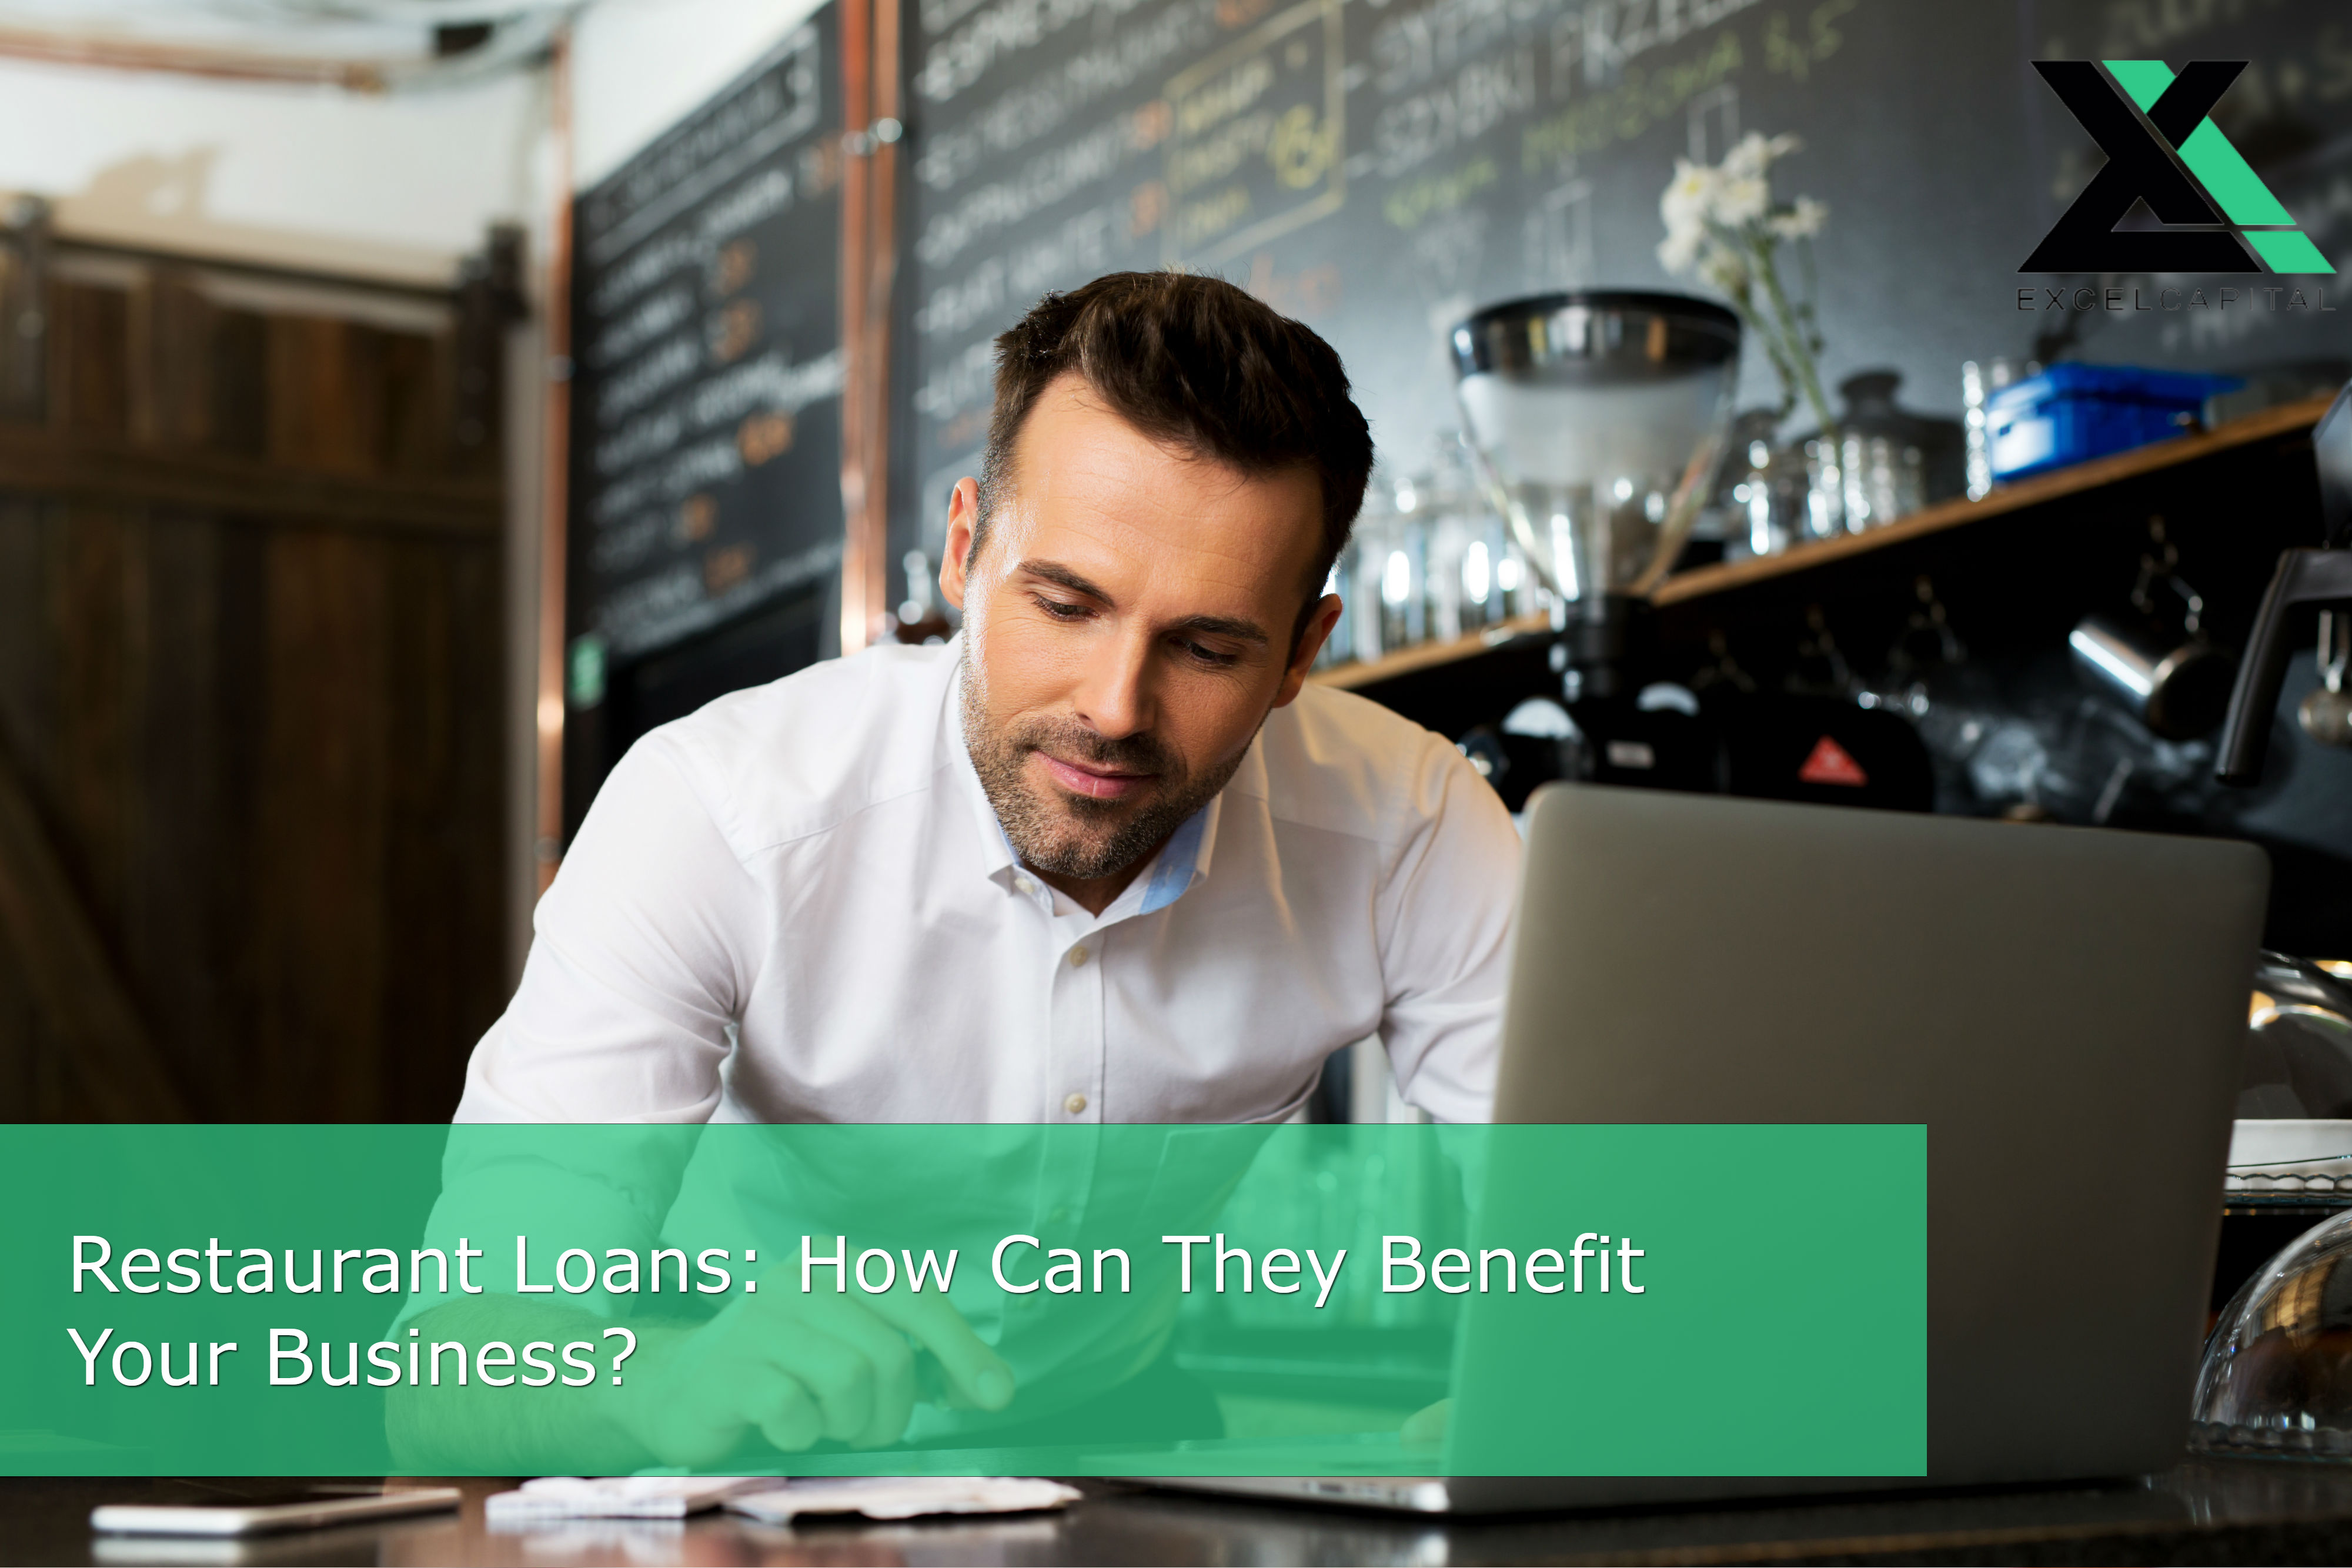 Restaurant Loans: How Can They Benefit Your Business?